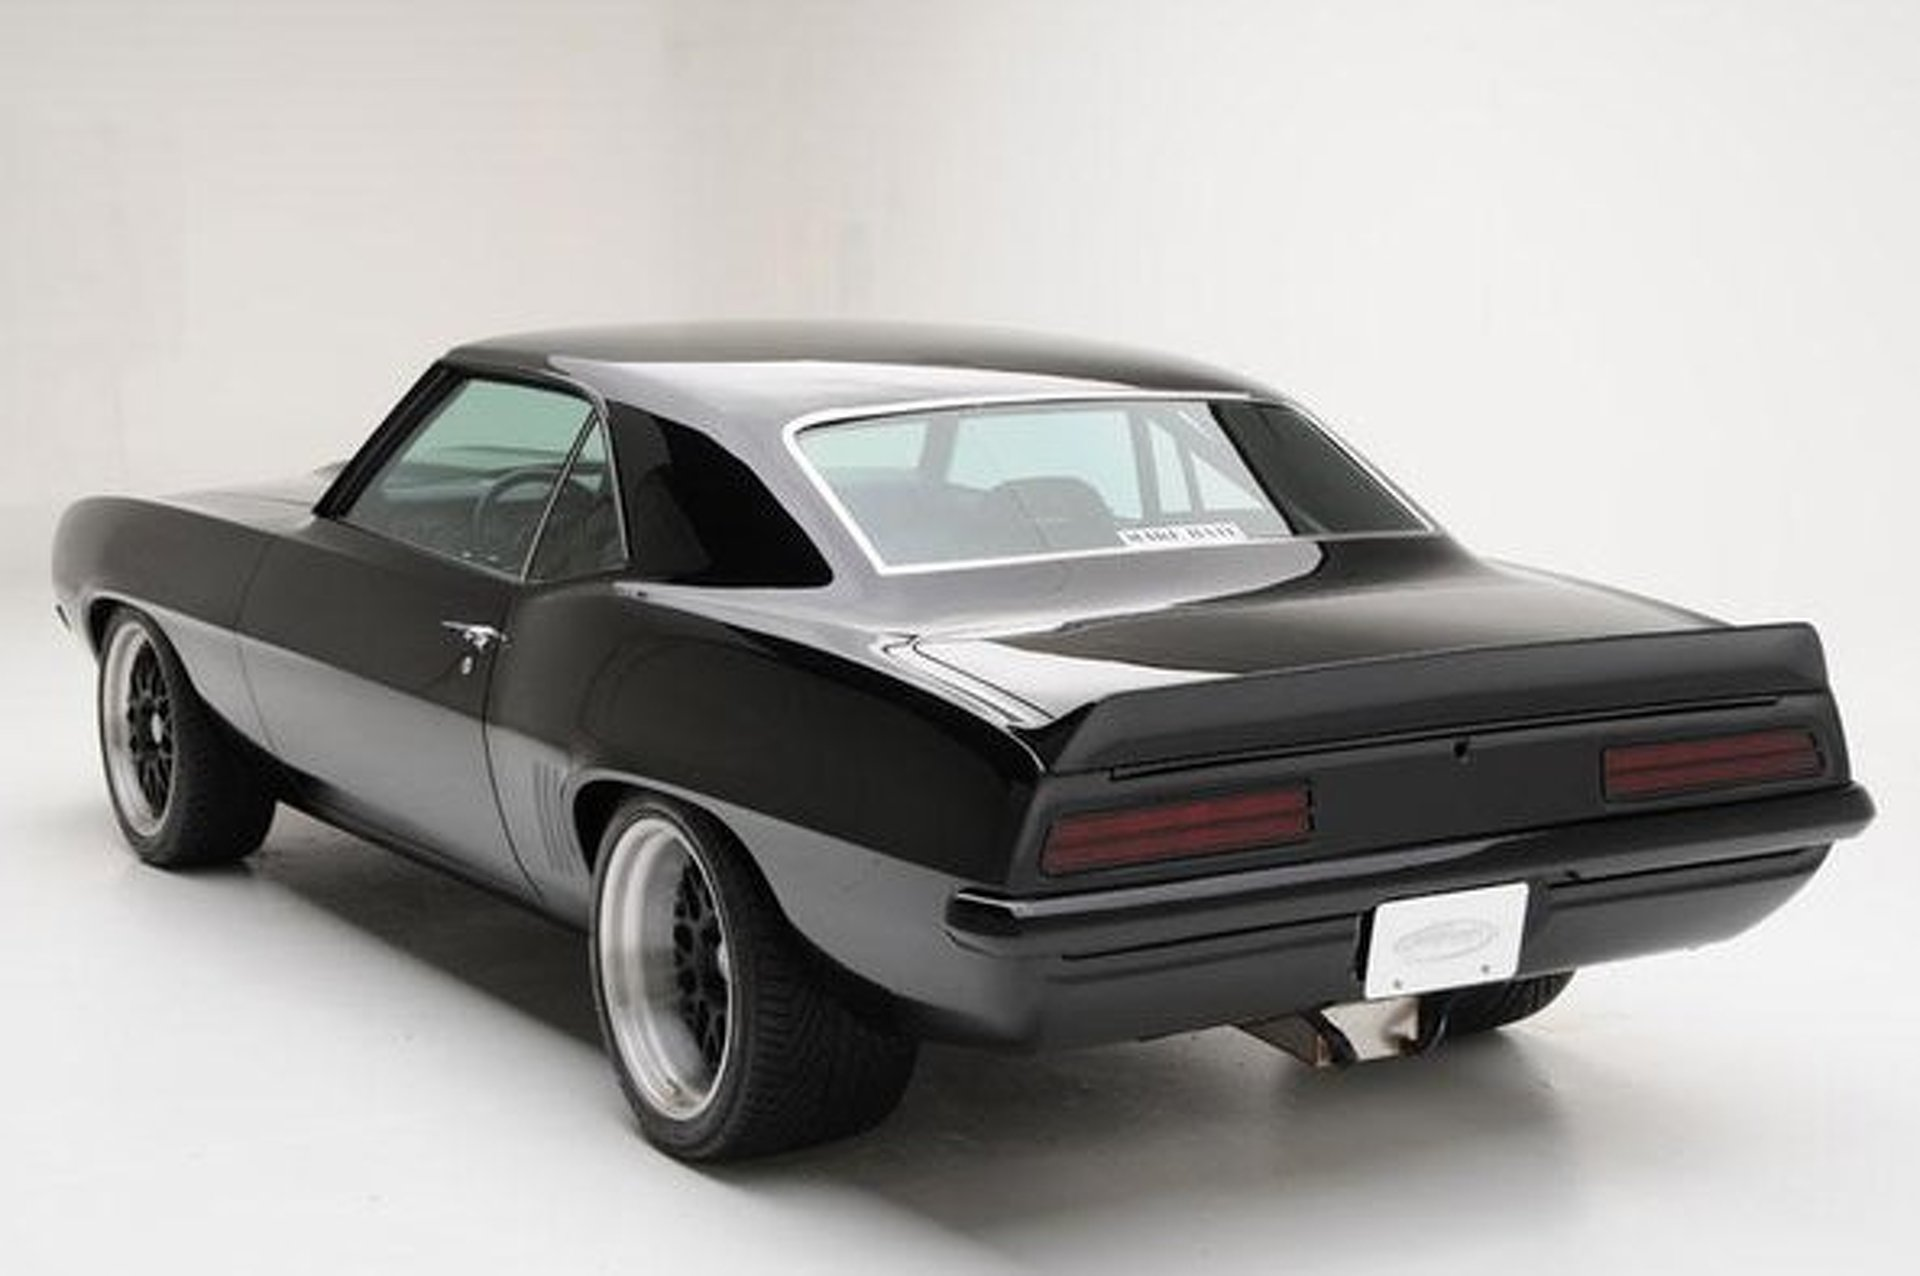 Nelson Racing Wants to Put 2,000HP in this 69 Chevy Camaro